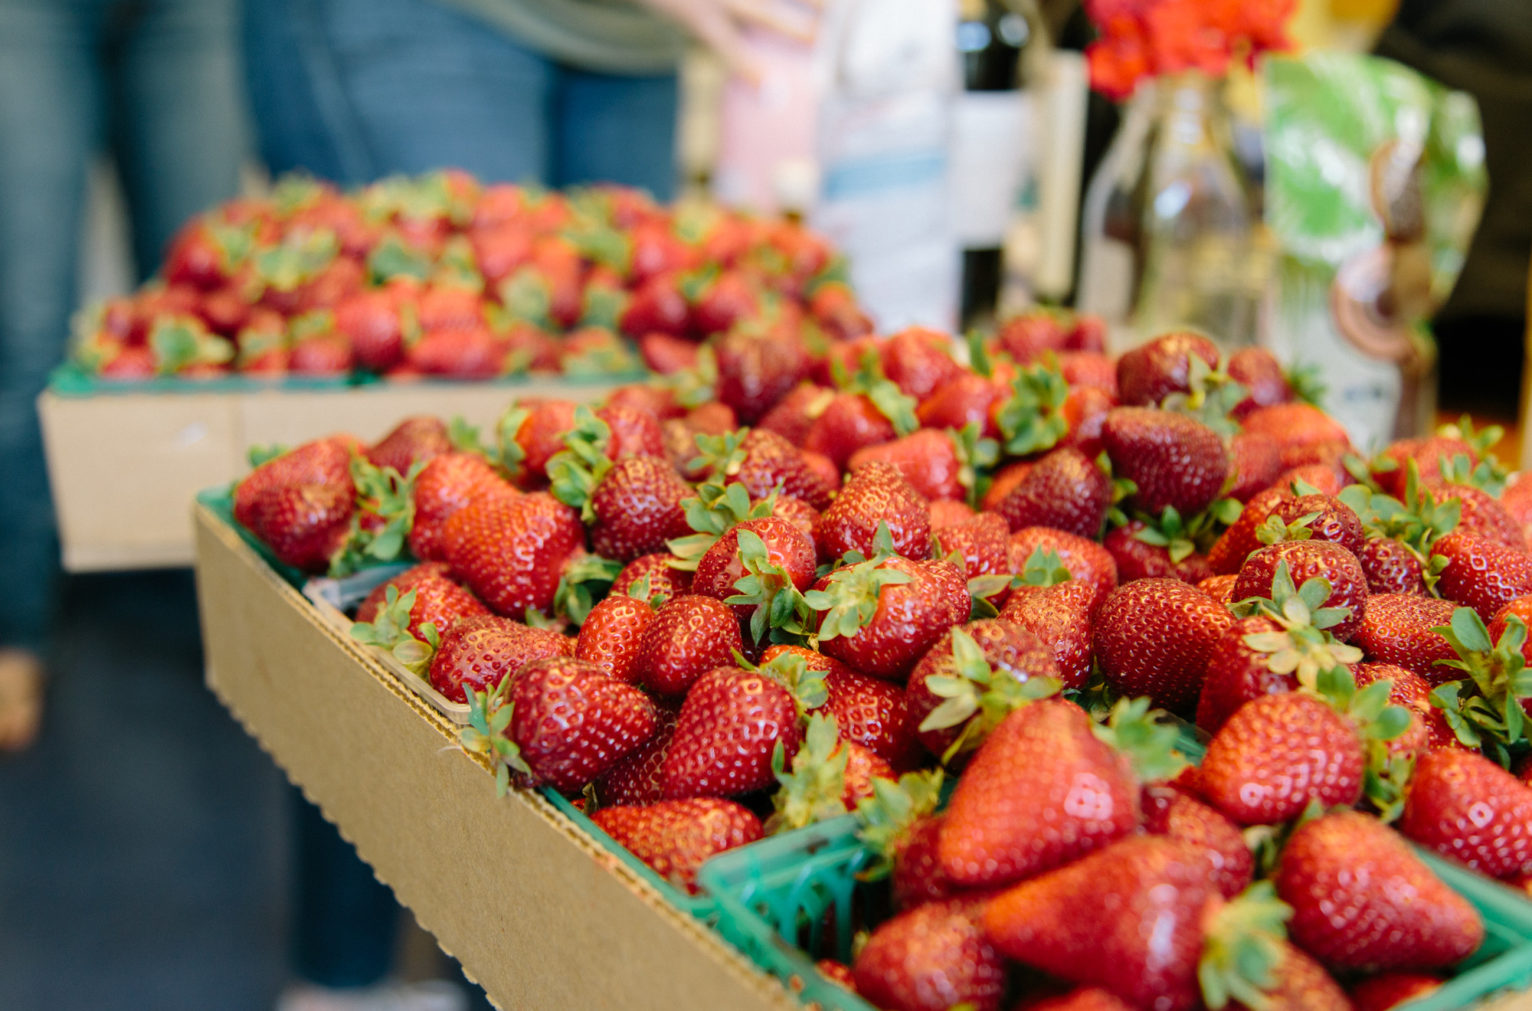 Organic Strawberries from the Cesar Chavez Certified Farmers' Market